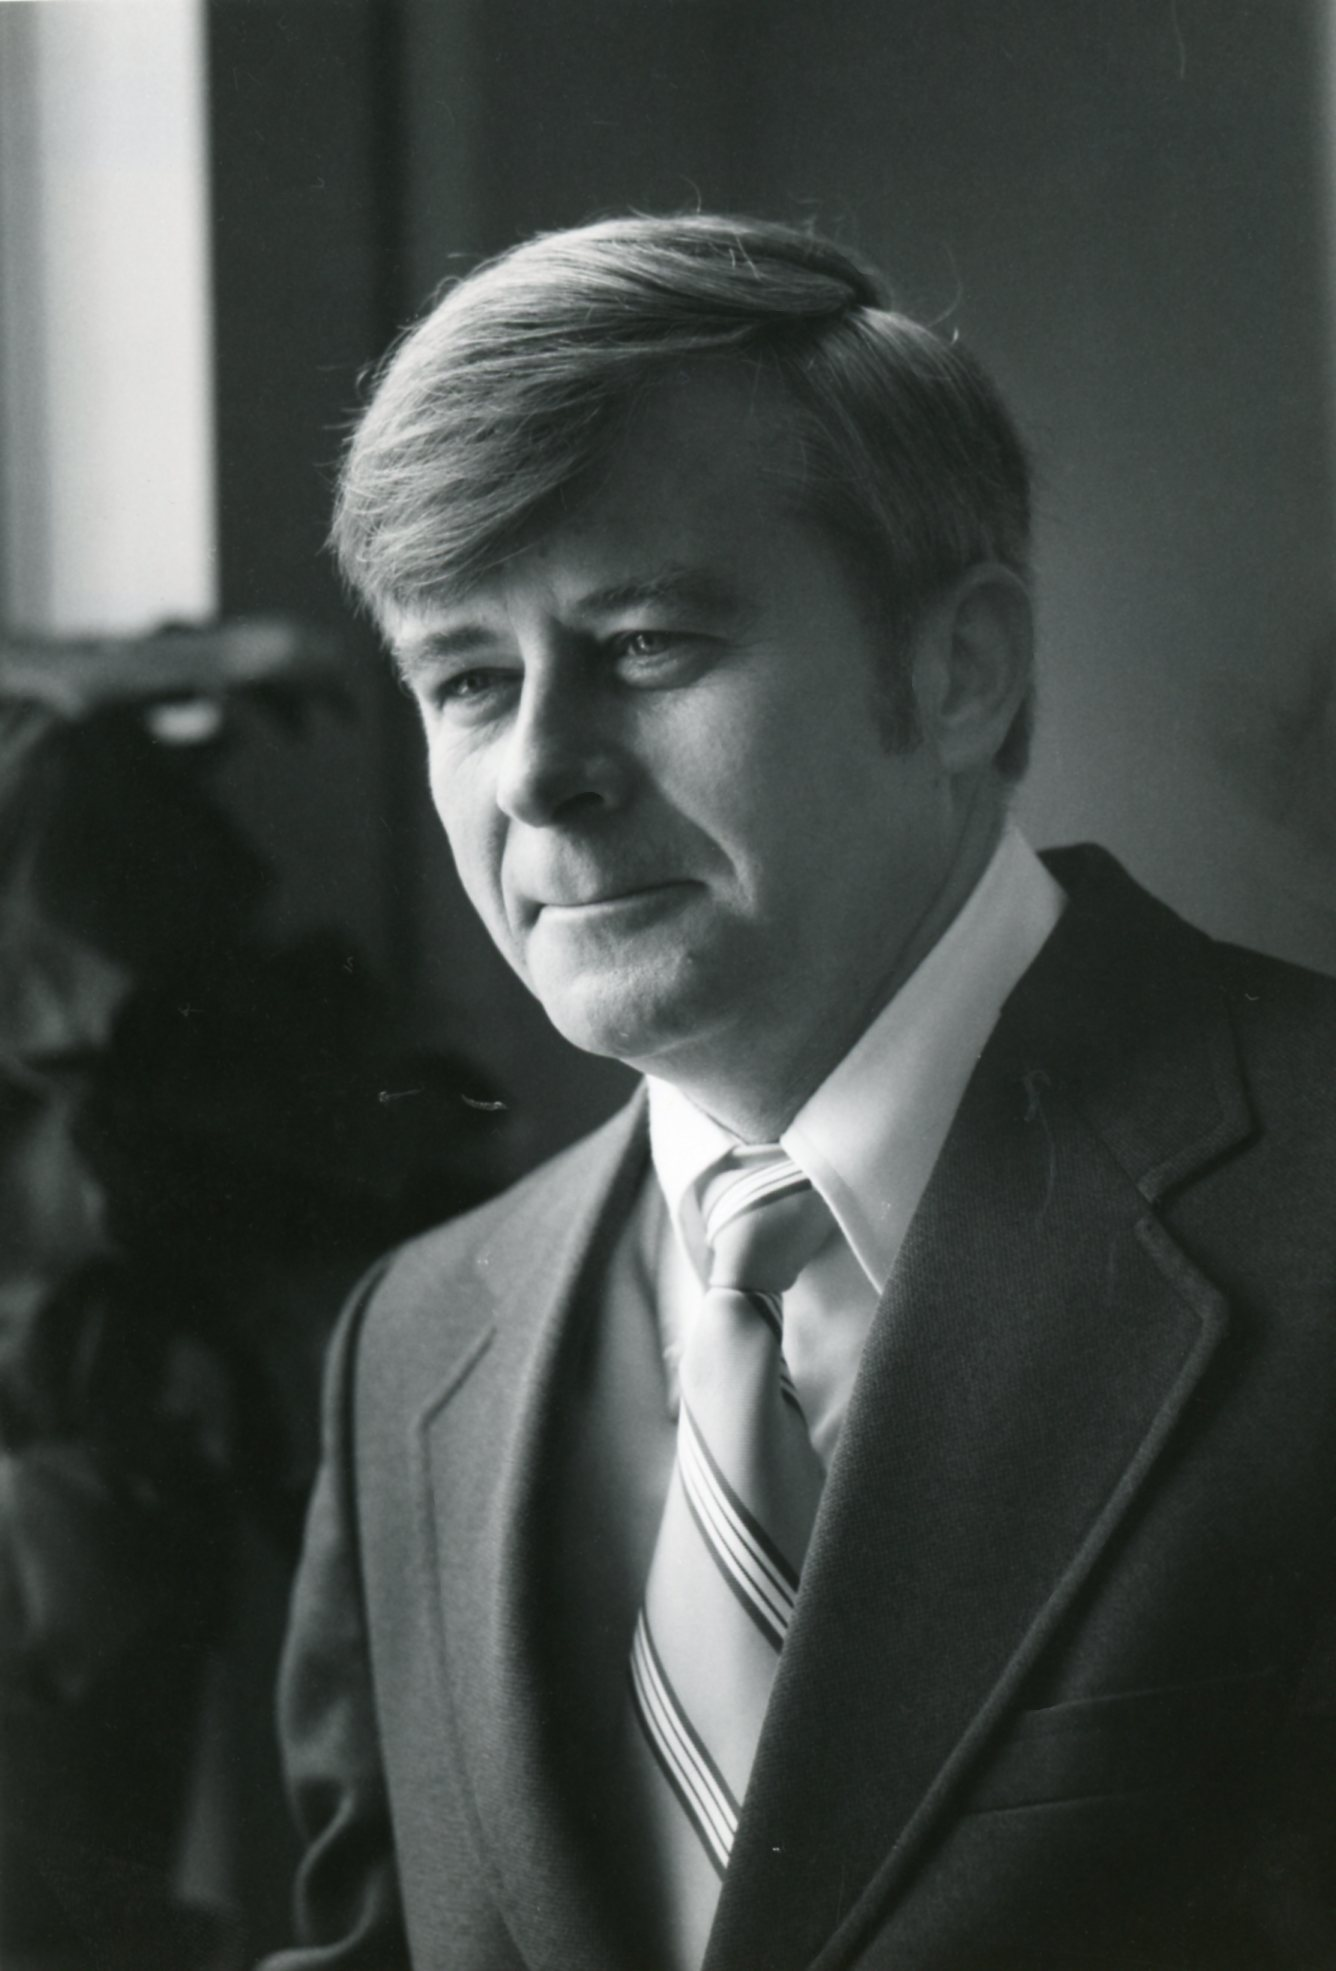 Dr. Norman Crawford